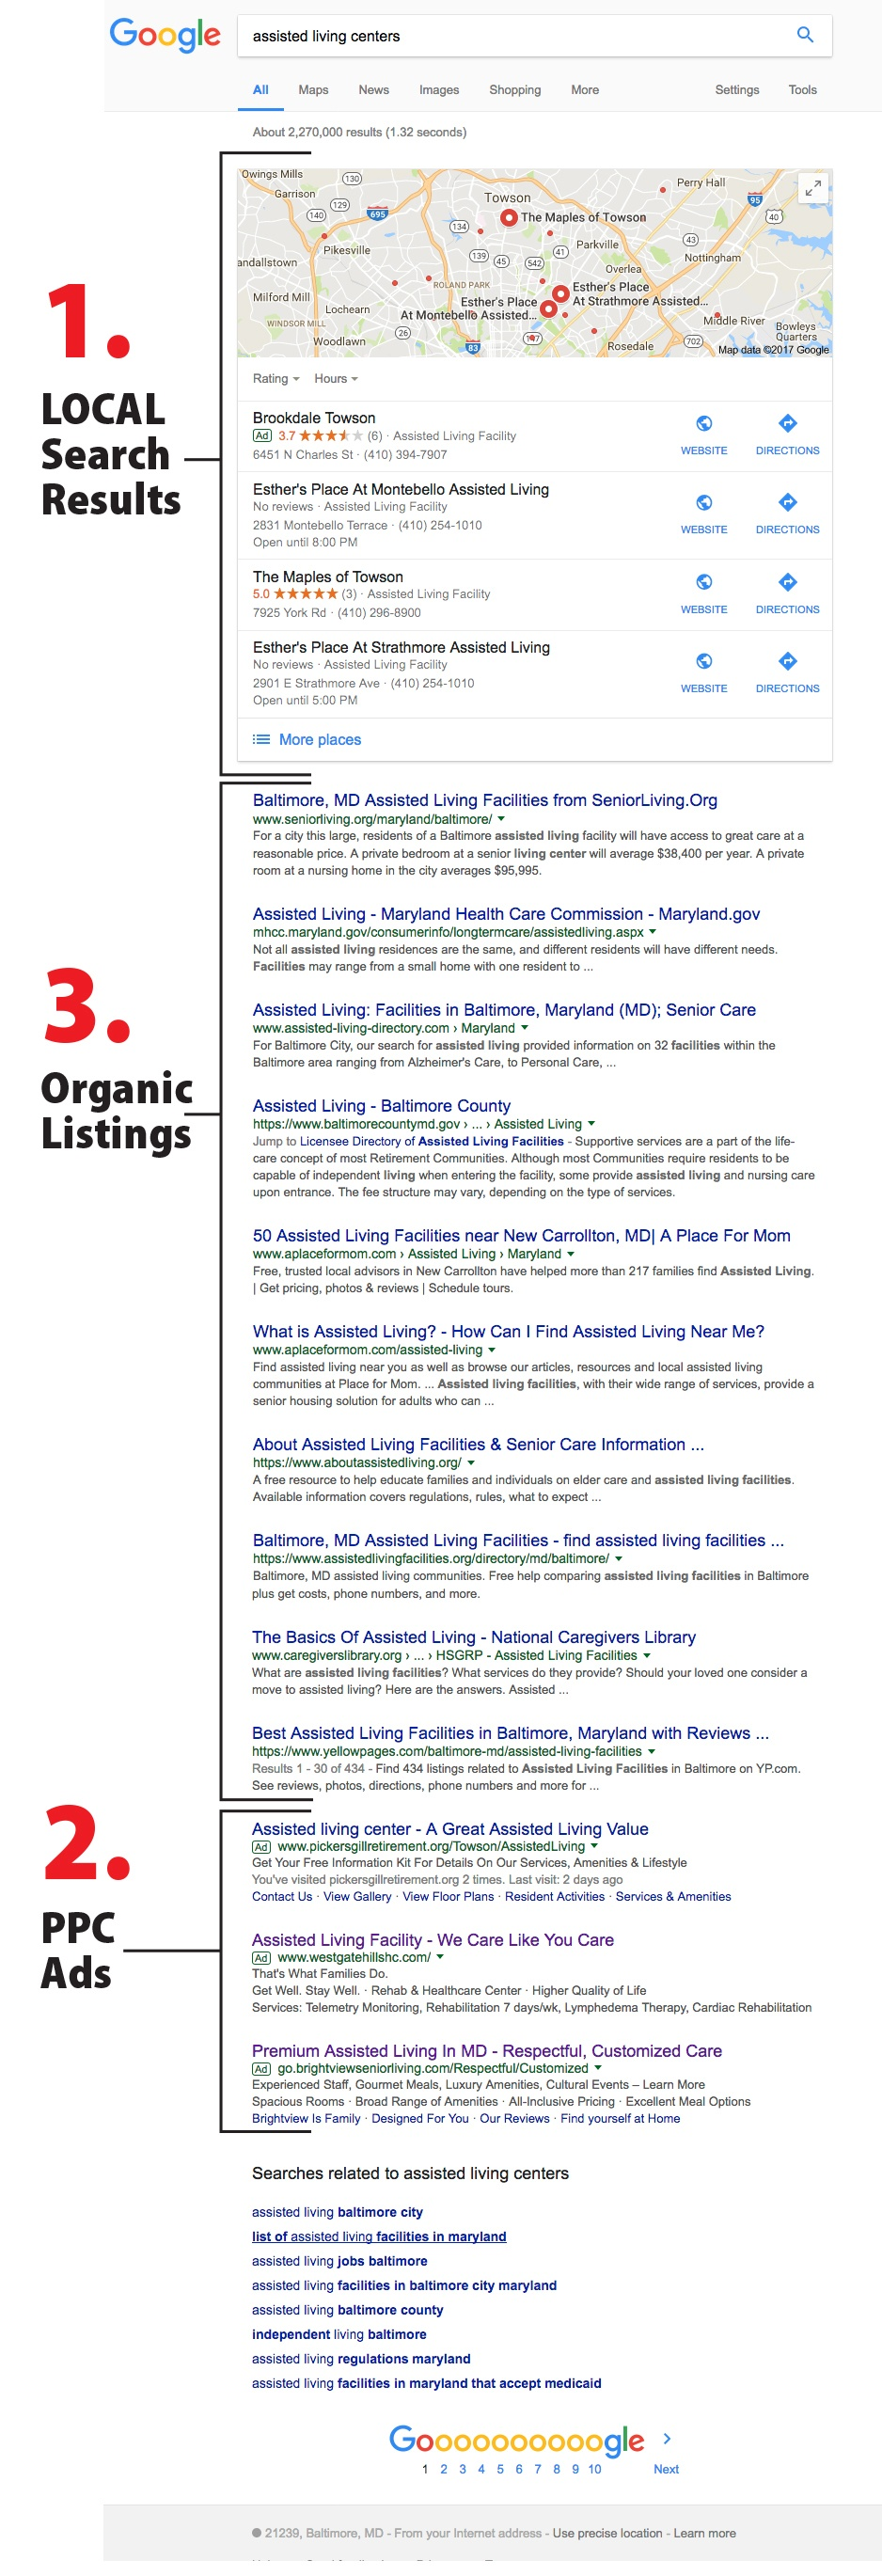 Search Engine Results Page of Assisted Living Centers Search